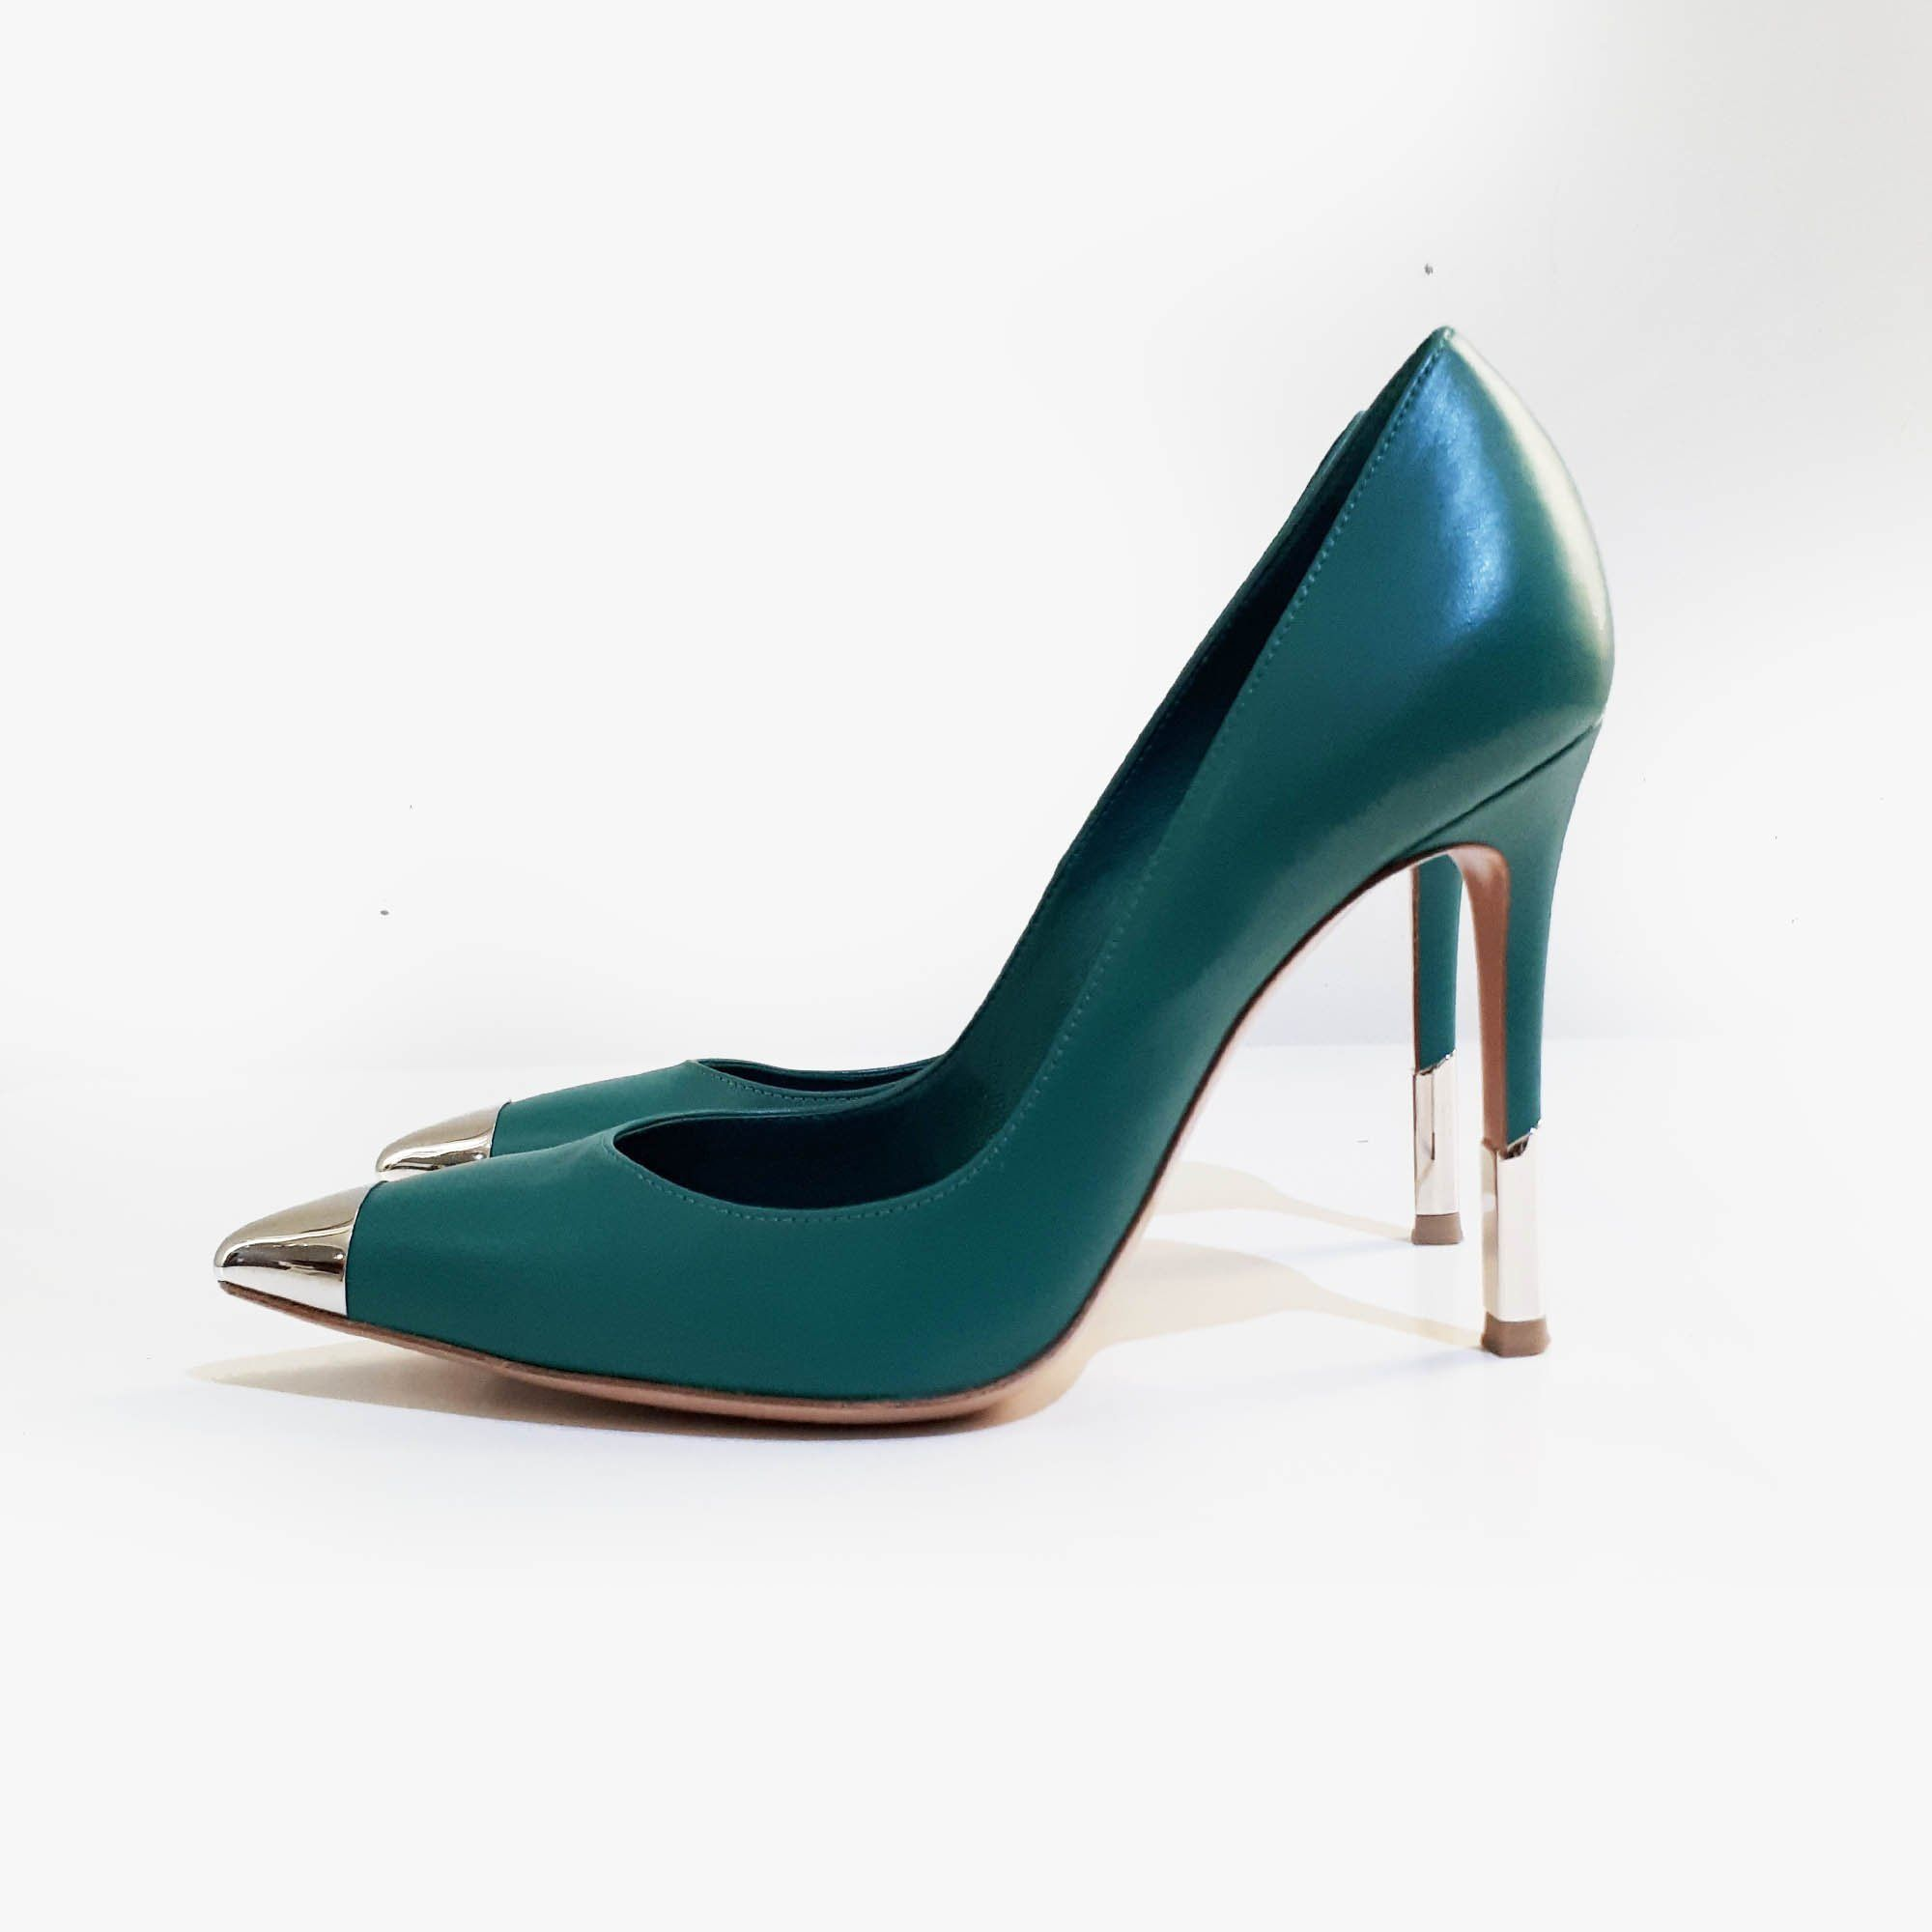 d9fa747162f5 Gianvito Rossi Leather and PVC Pointed Toe Pumps – Garderobe